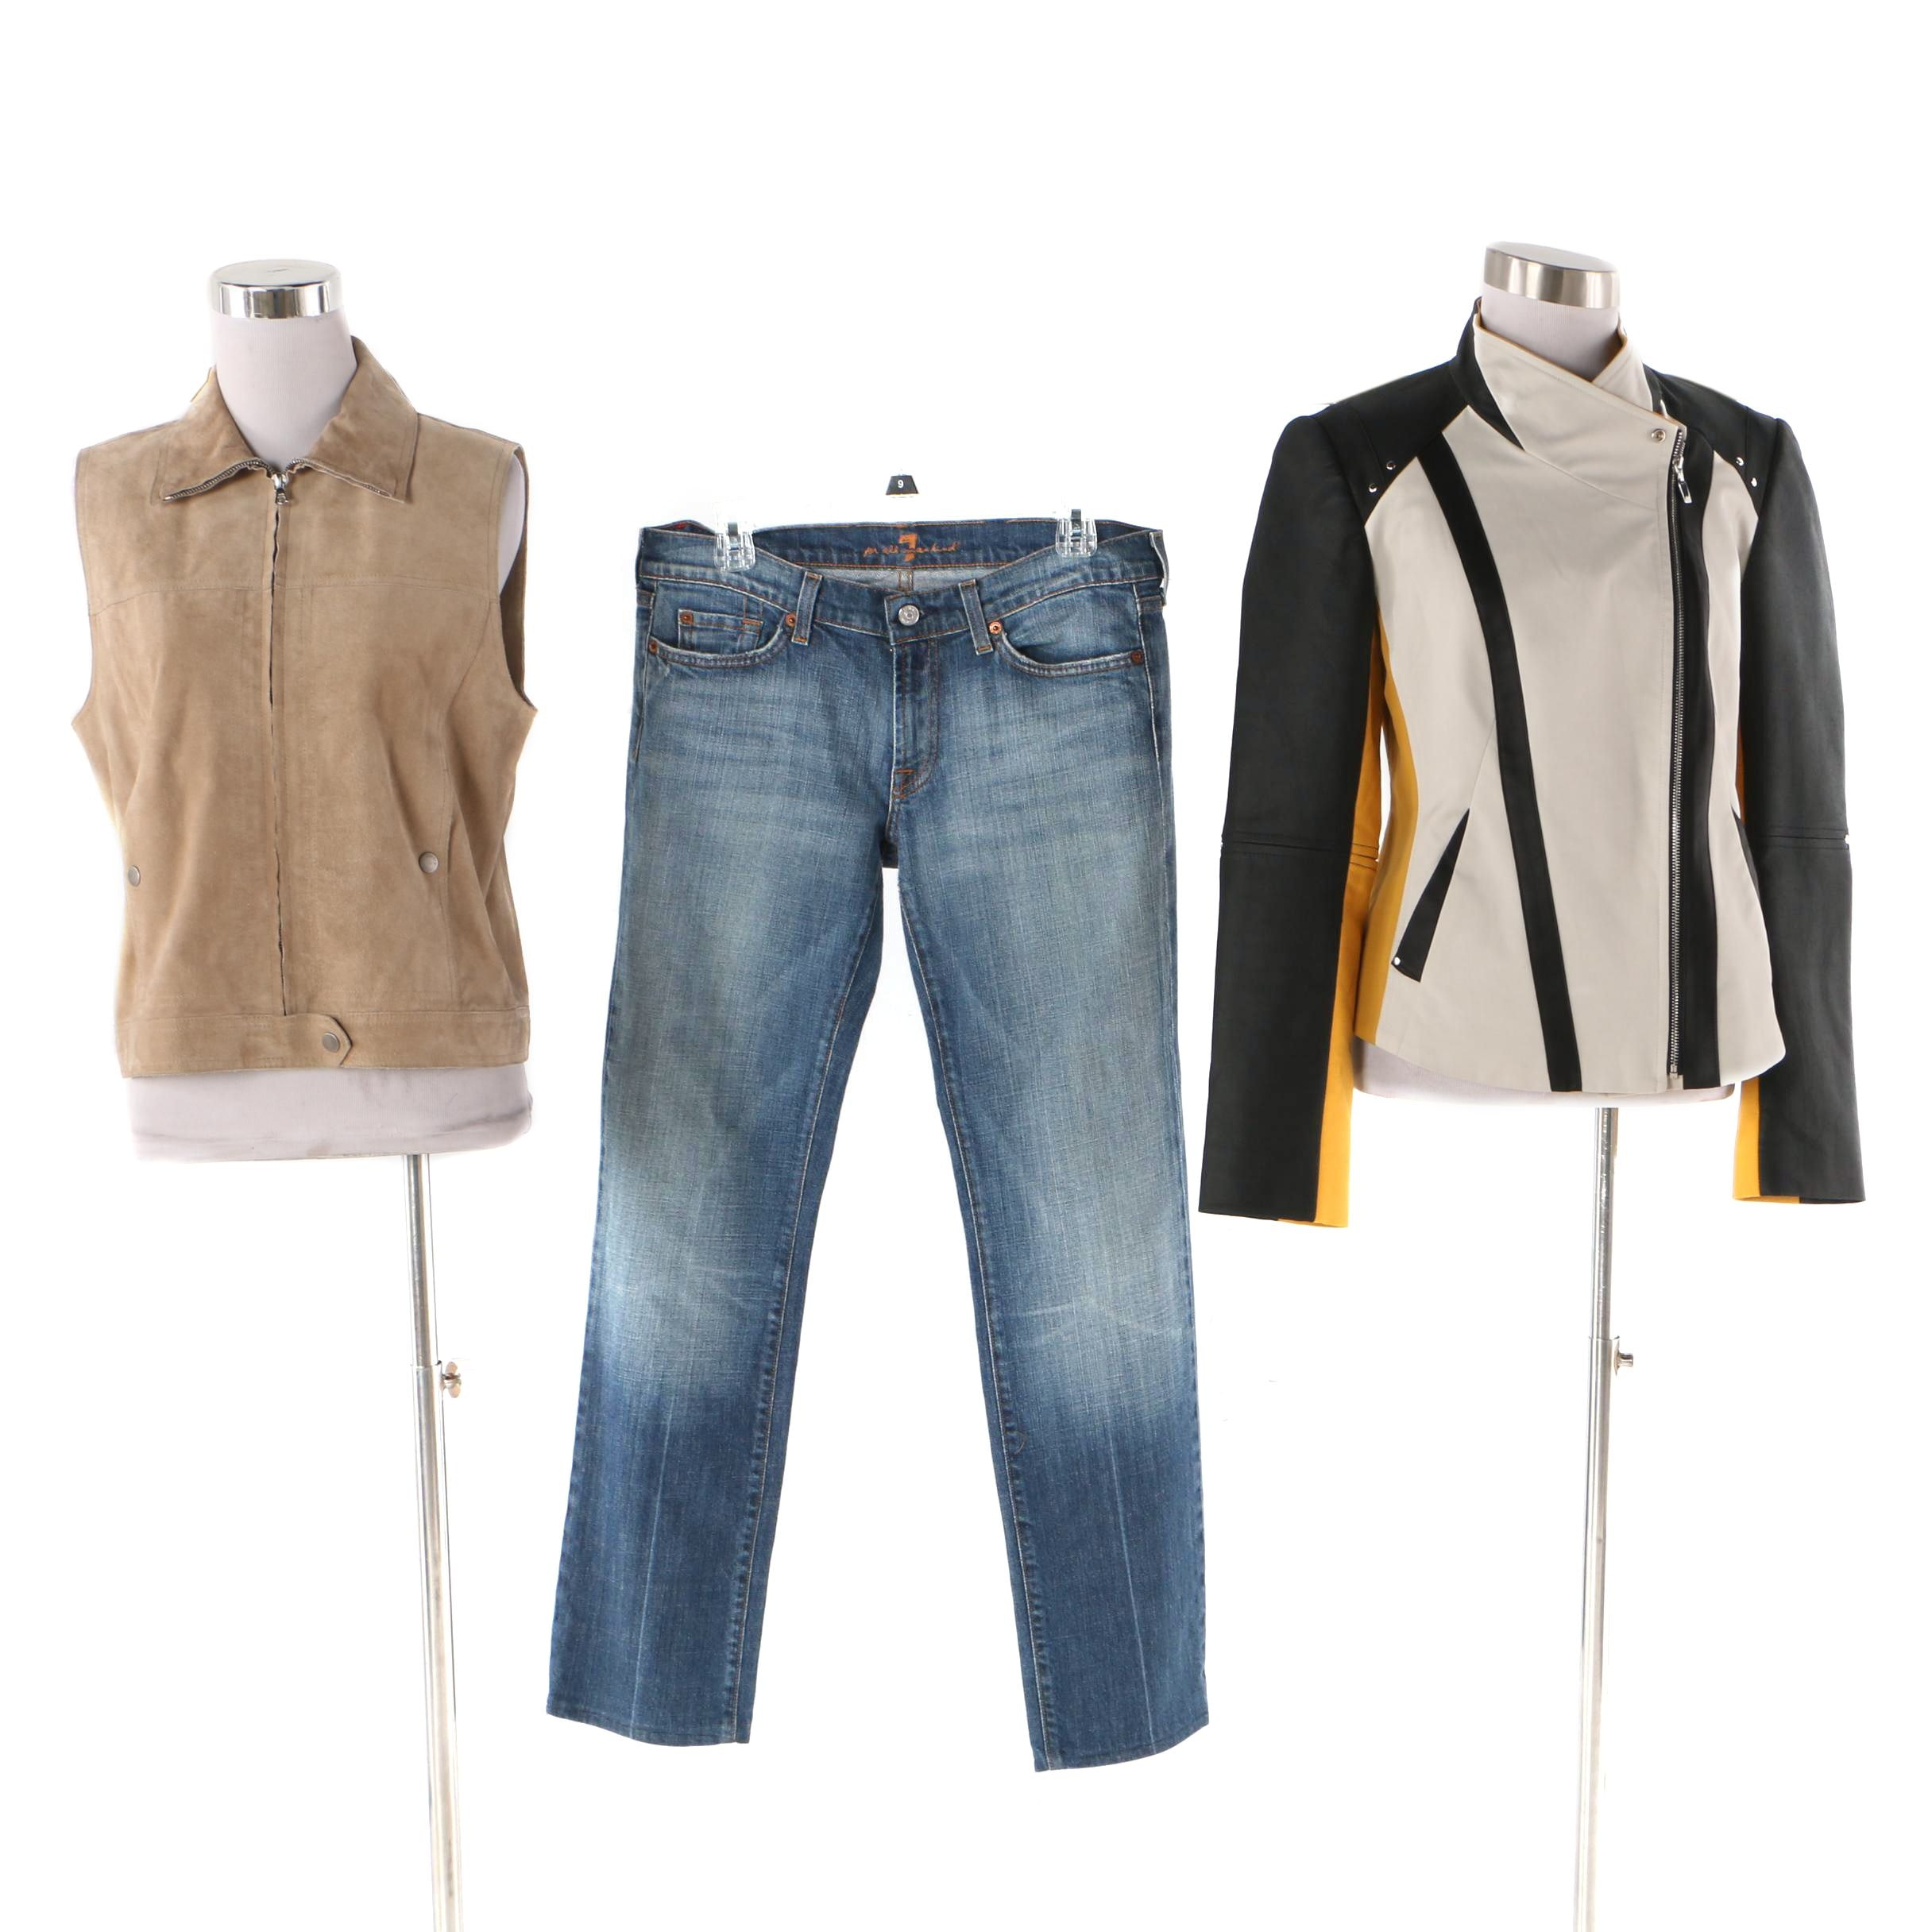 Minicucci x Marcanio Jacket with Theory Vest and 7 For All Mankind Jeans